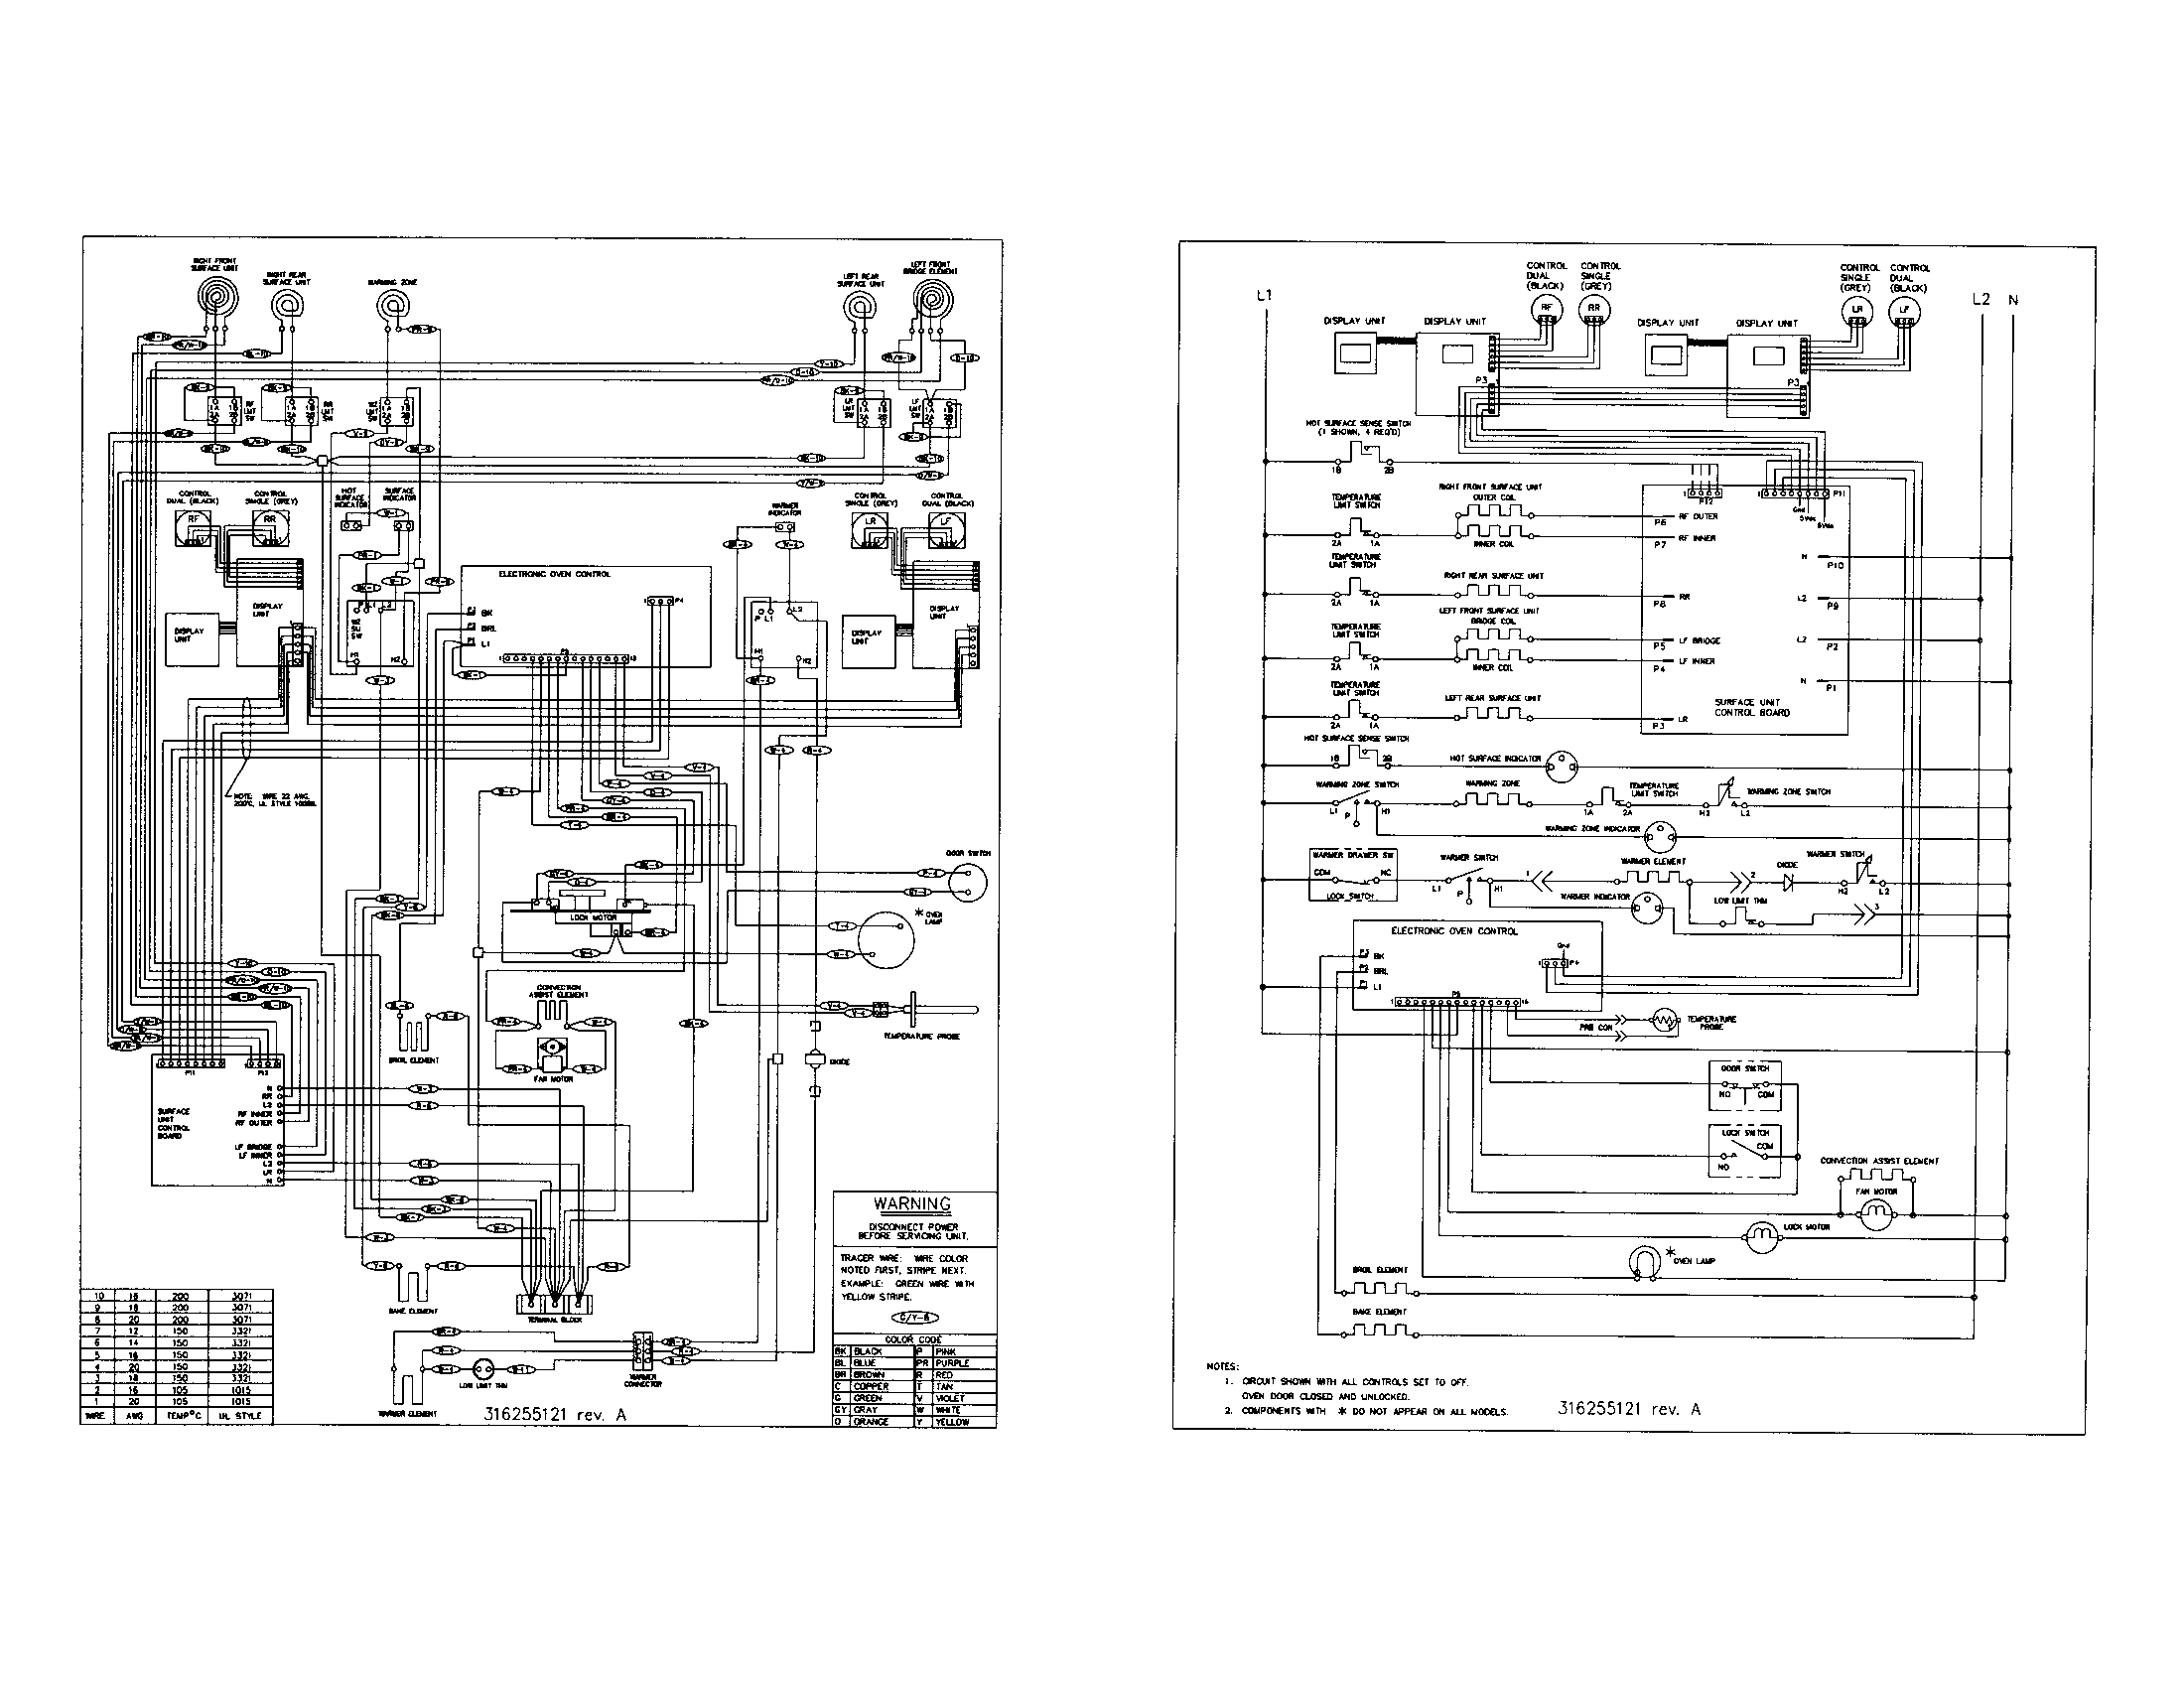 maytag refrigerator wiring diagram with Index on Index additionally Ice Fill Adjustment furthermore Electrical Diagram For Kenmore further Bosch Dishwasher Parts Ge also Wiring Diagram Electric Brake Controller.